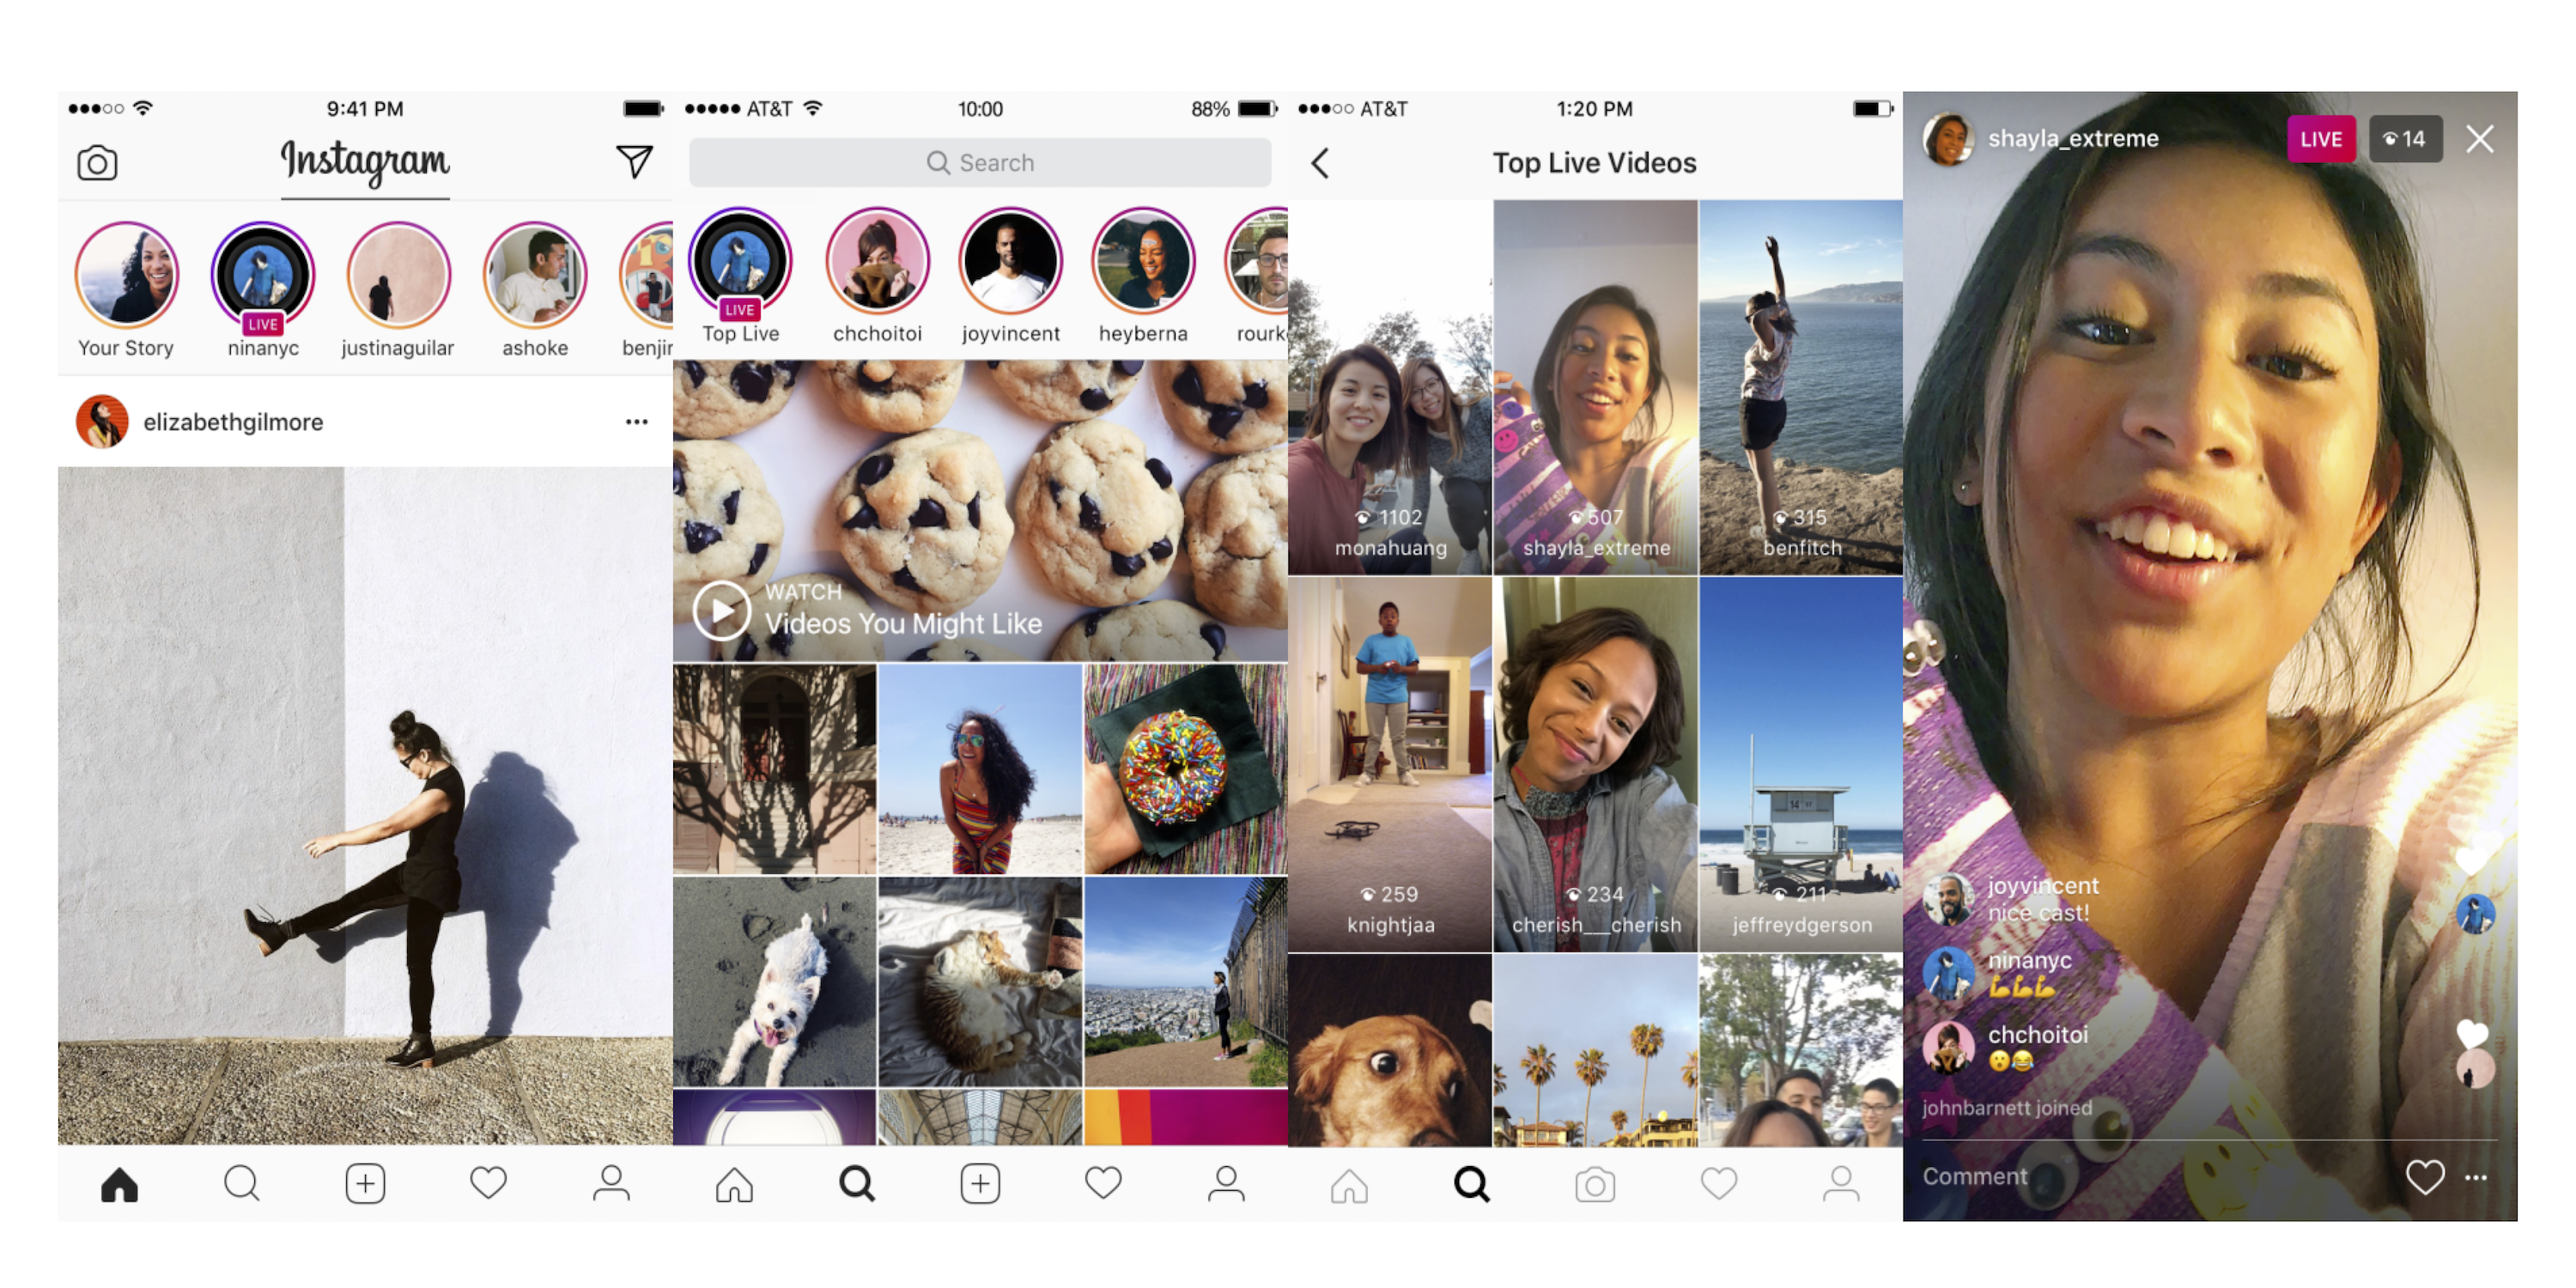 instagram-app-live-video